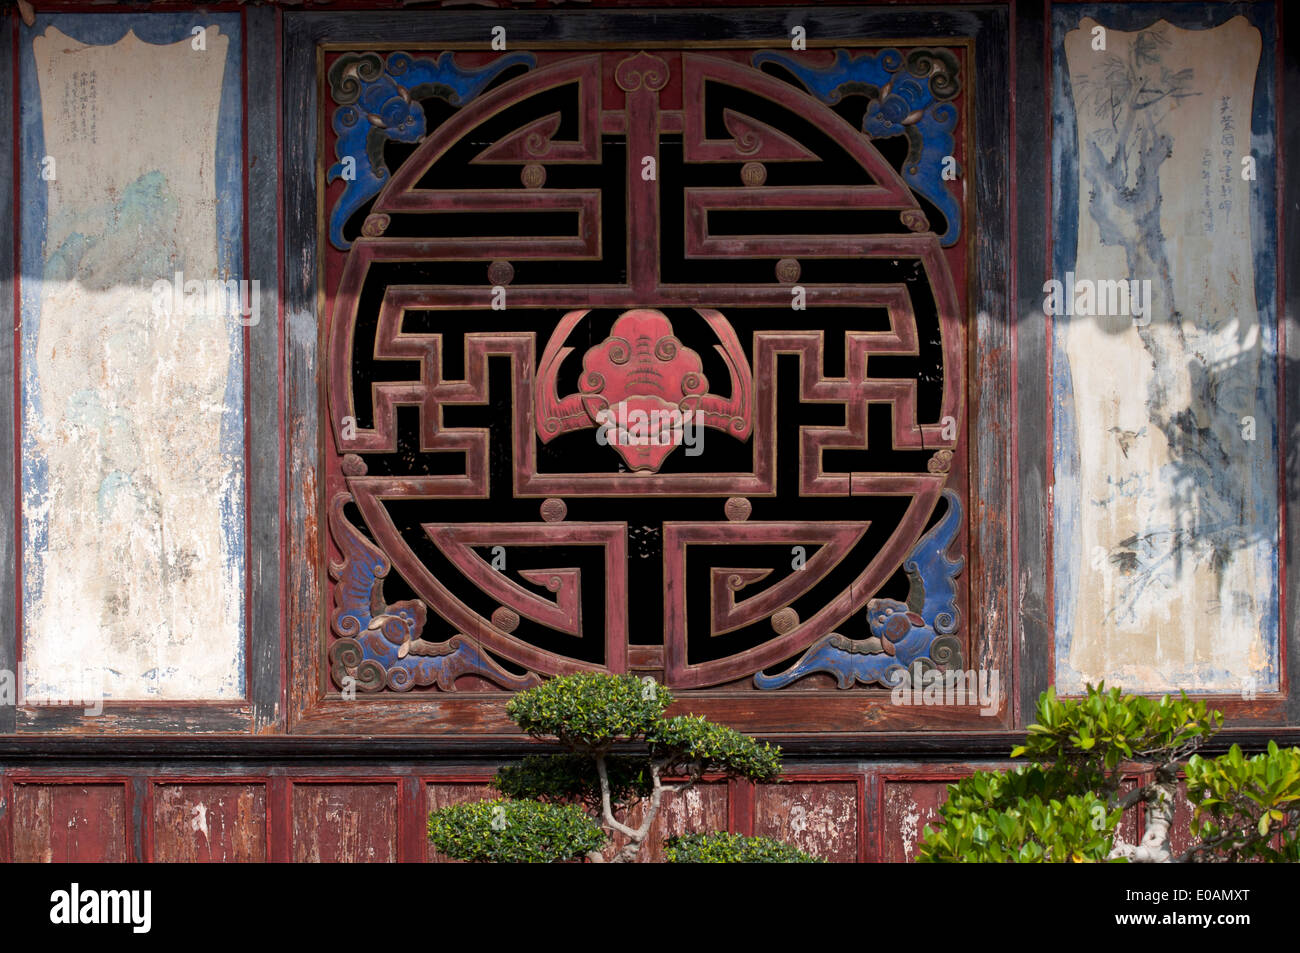 Chinese Lattice Work